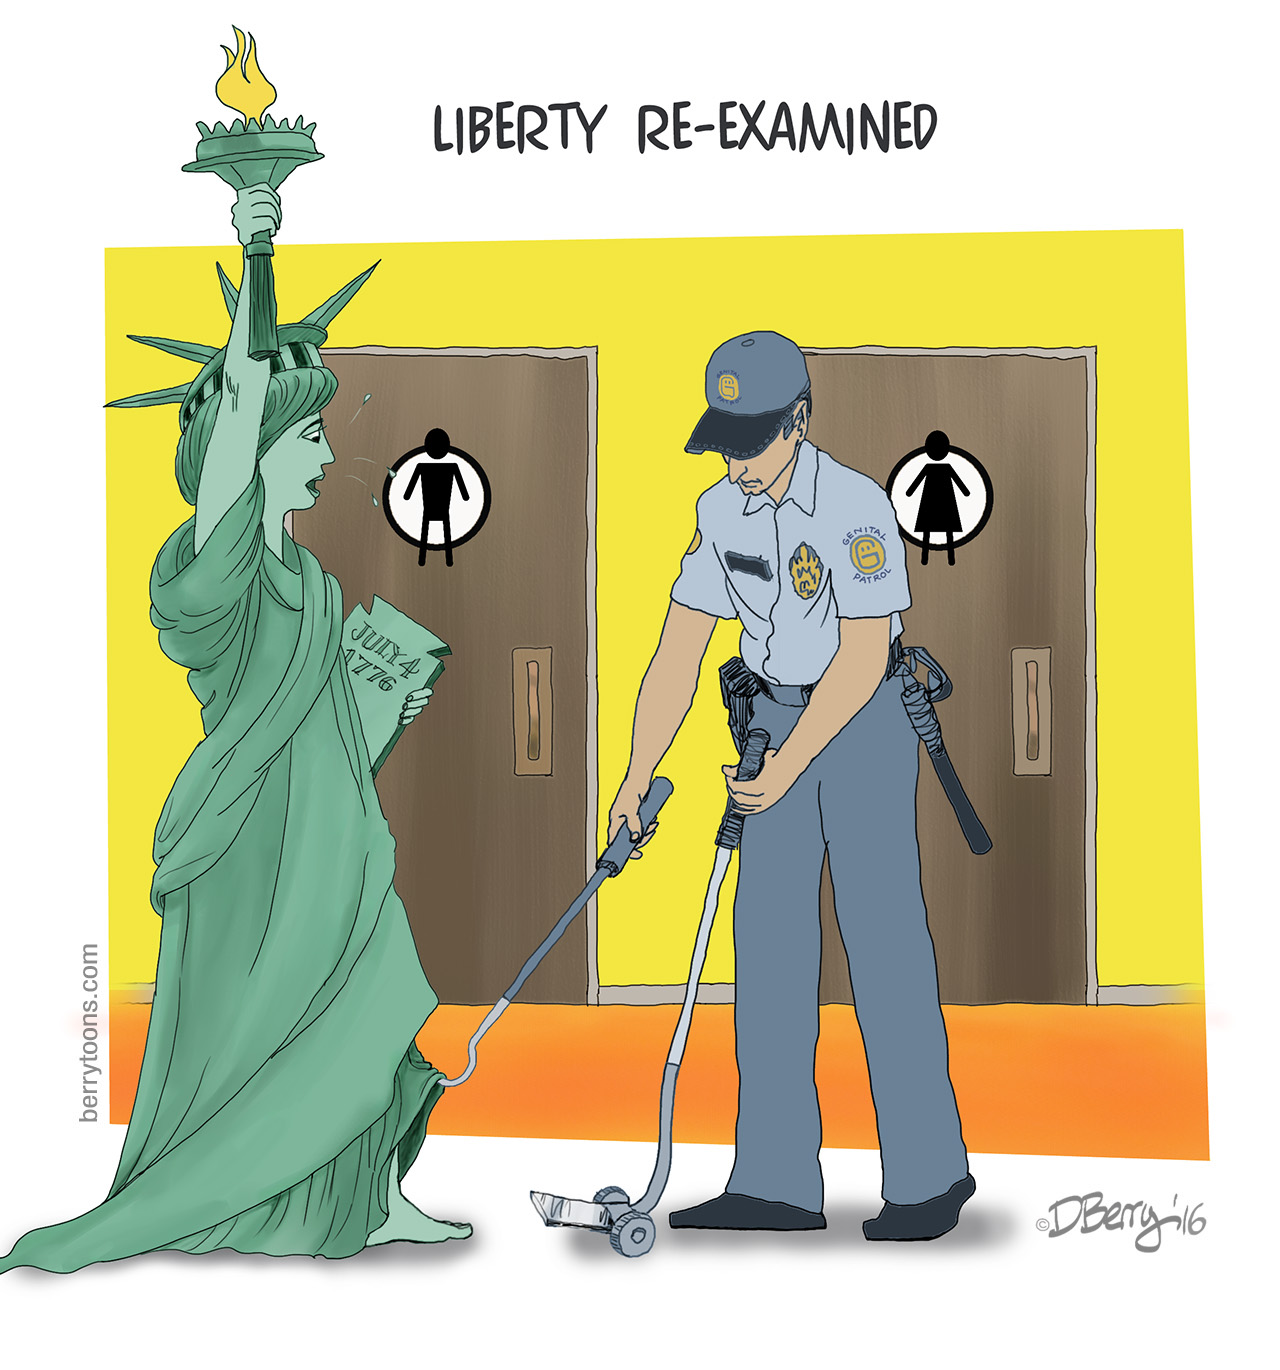 Liberty re-examined